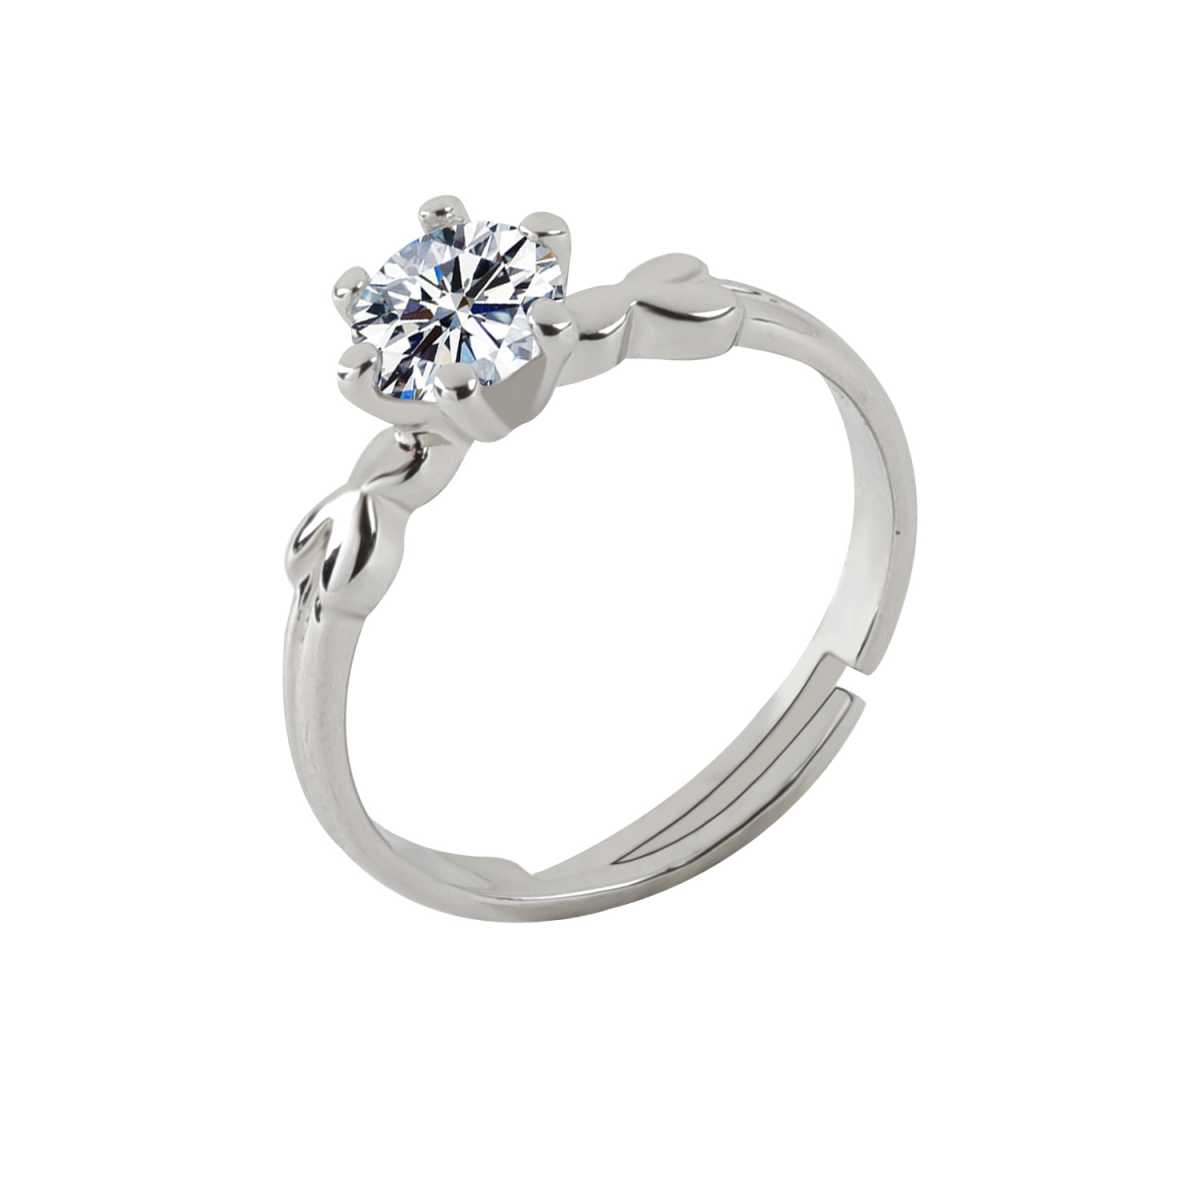 Silver Shine Silver Plated Elegant Classic Crystal Adjustable Ring for Girls